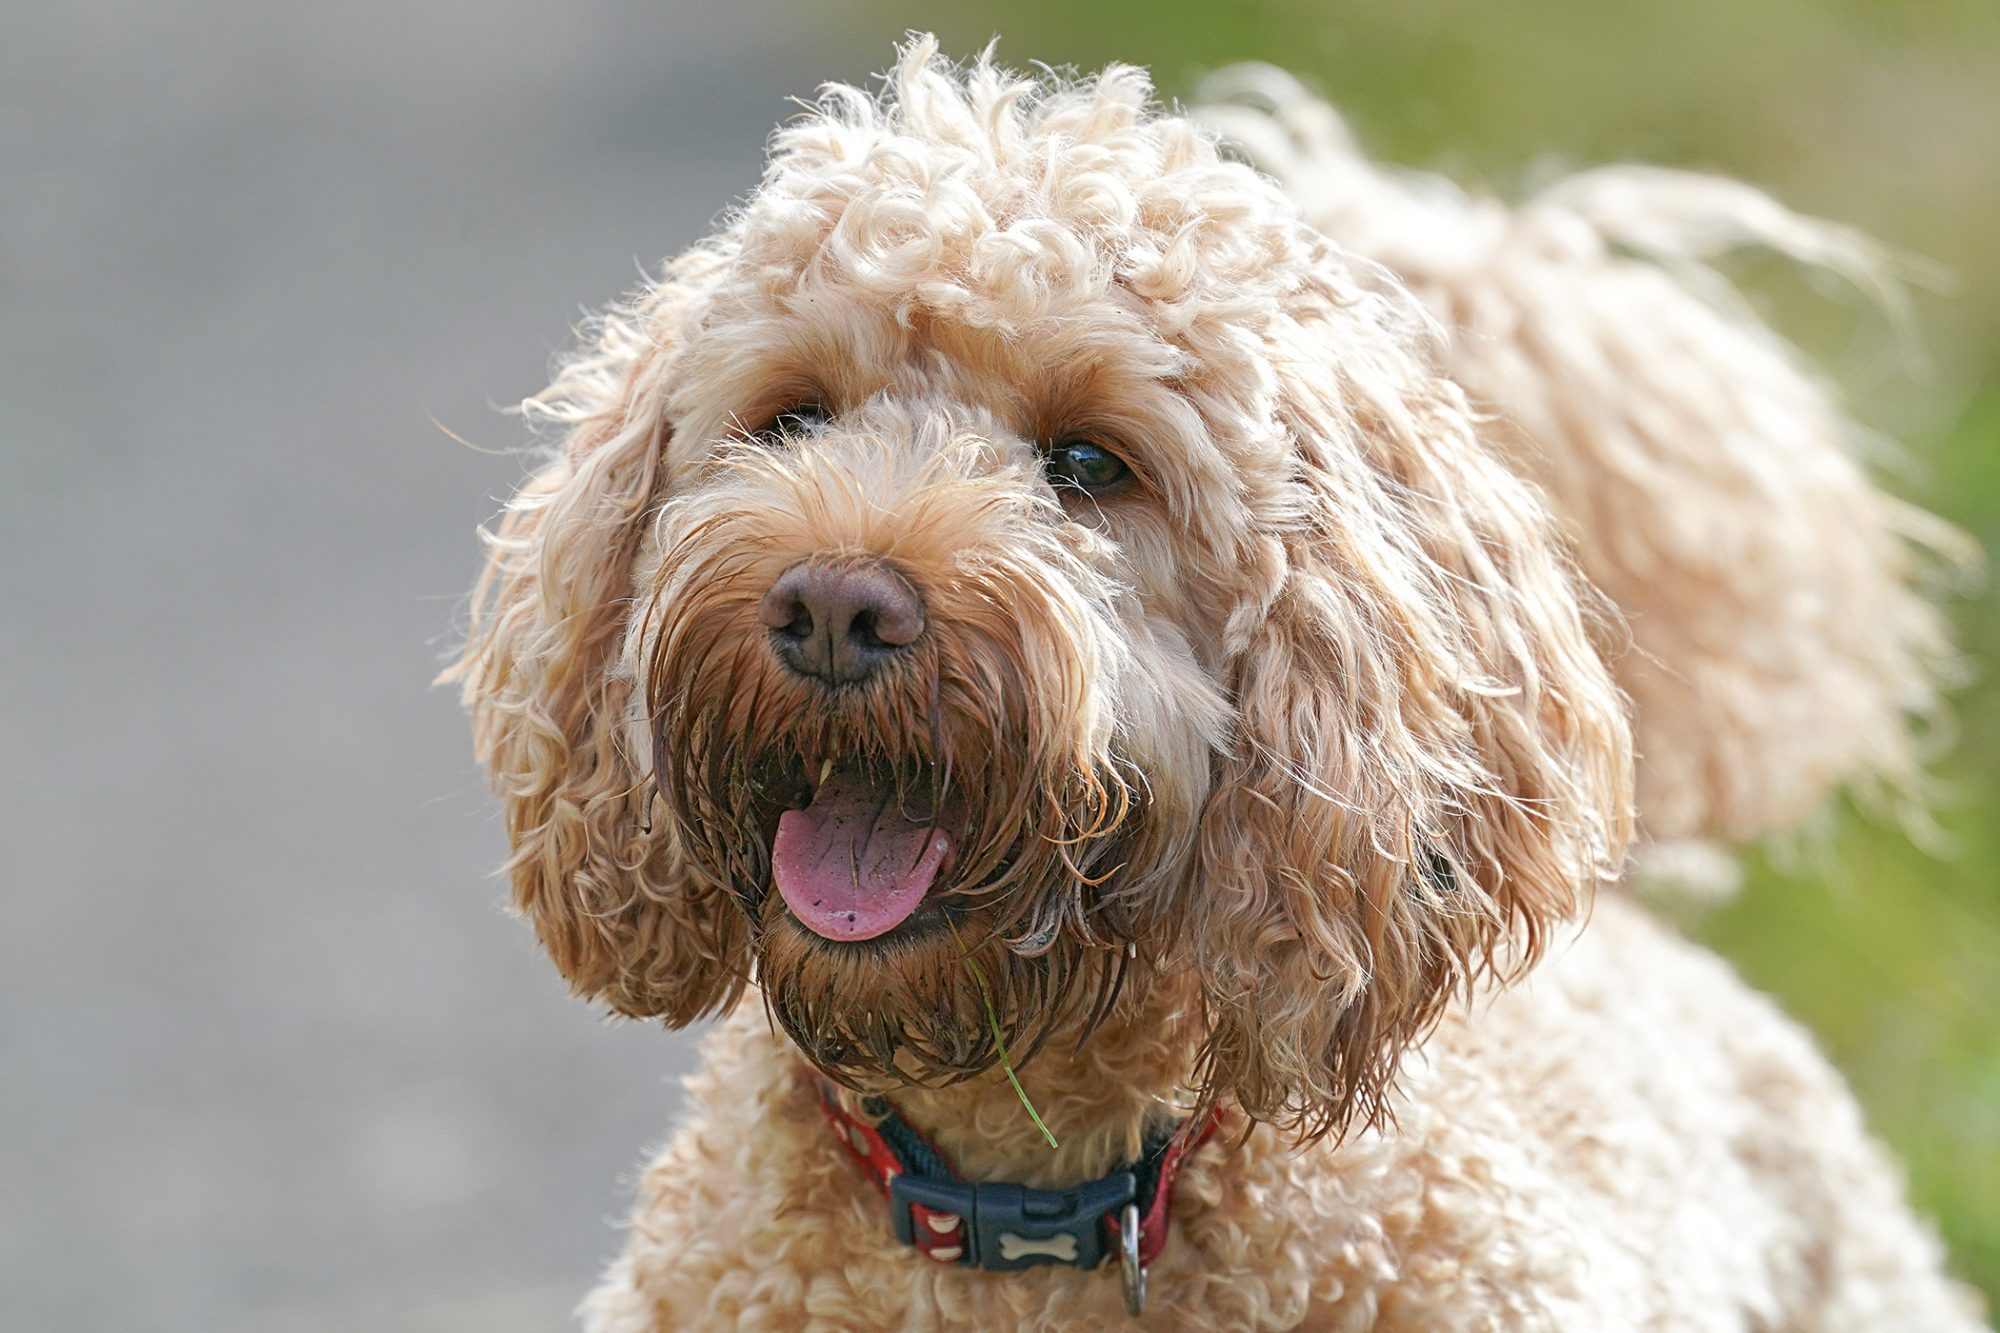 light colored Cockapoo dog with tongue out